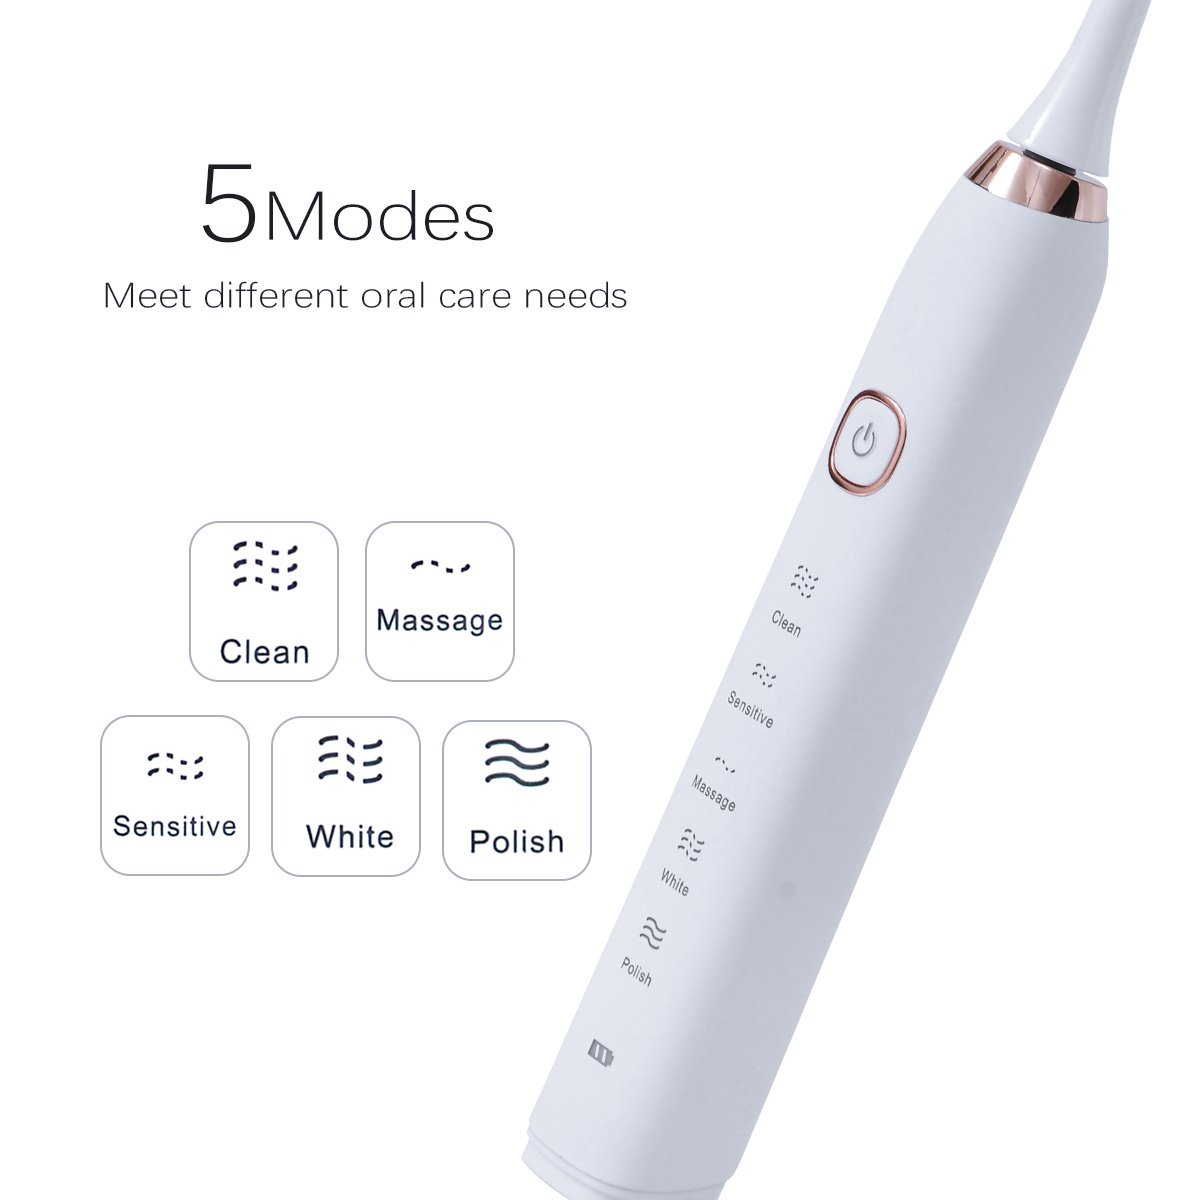 Electric Toothbrush, SARMOCARE Rechargeable Electronic Sonic Toothbrush with Smart Timer, 5 Modes 2 Replacement Brush Heads (White)